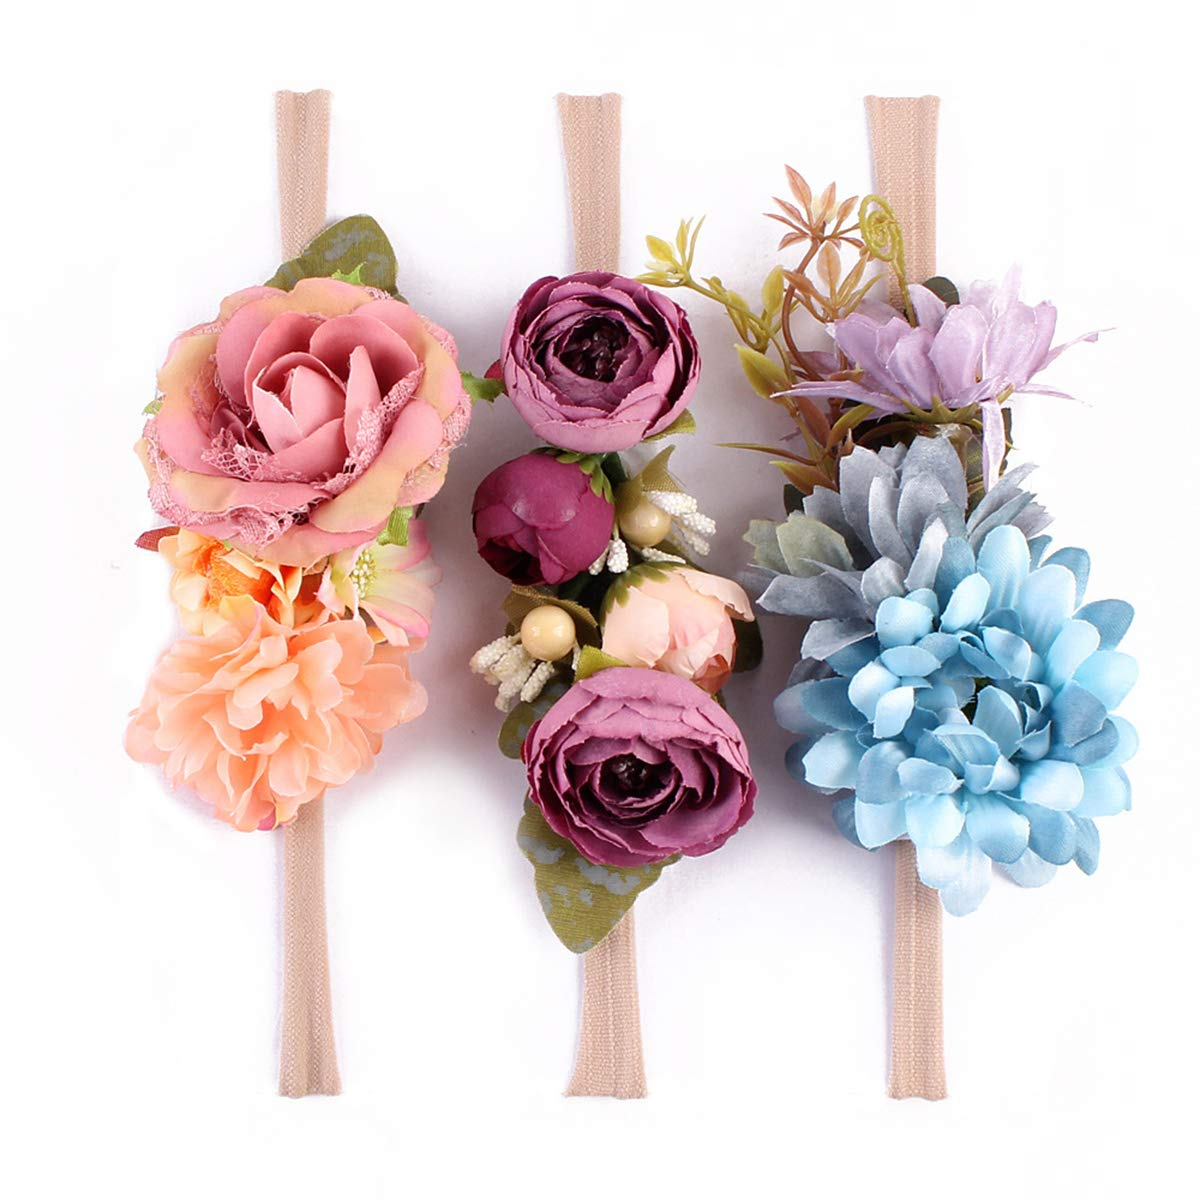 Tieback Flower Crown Elastic Flower Headband Baby Girl Floral Crown Wreath Newborn Hair Accessories (3 Colors Pack - D)